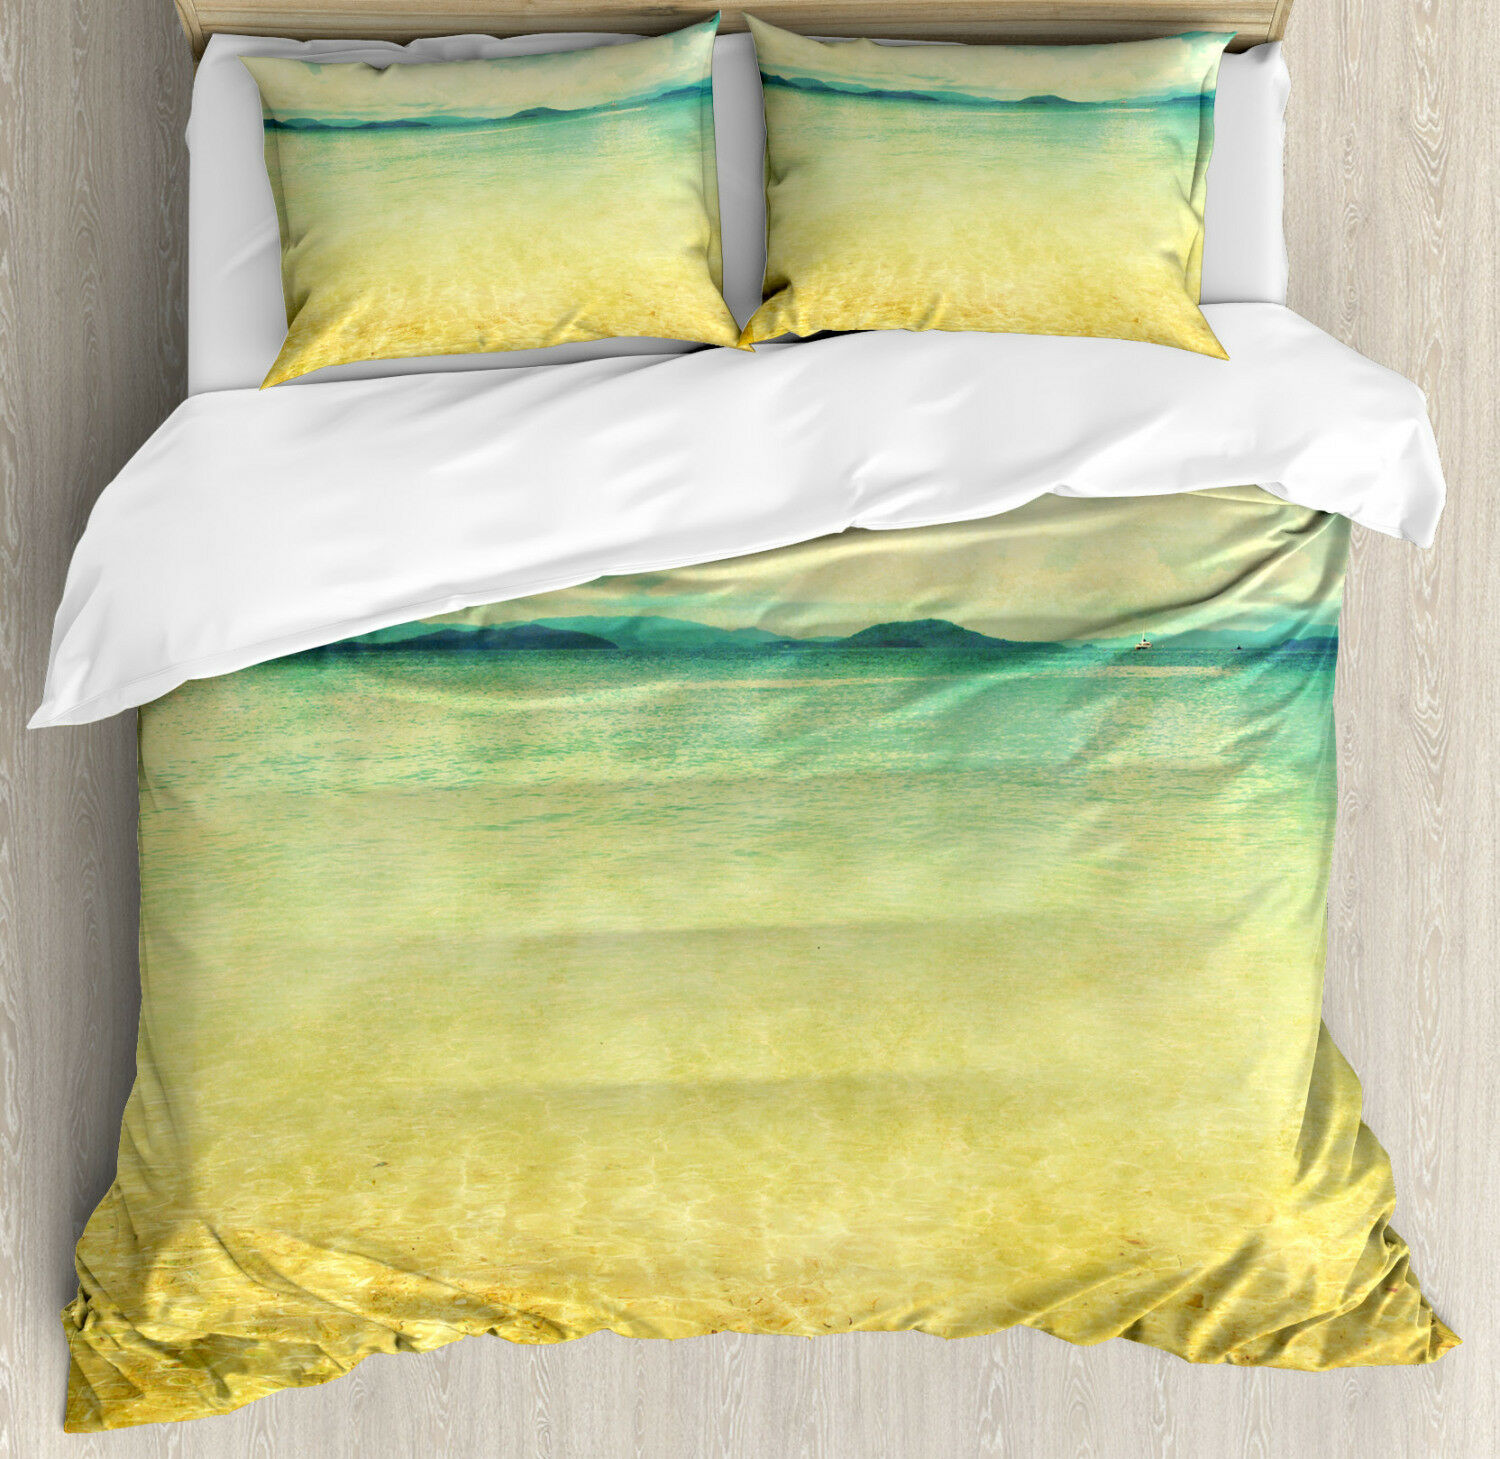 Beach Duvet Cover Set with Pillow Shams Vintage Grunge Sea View Print